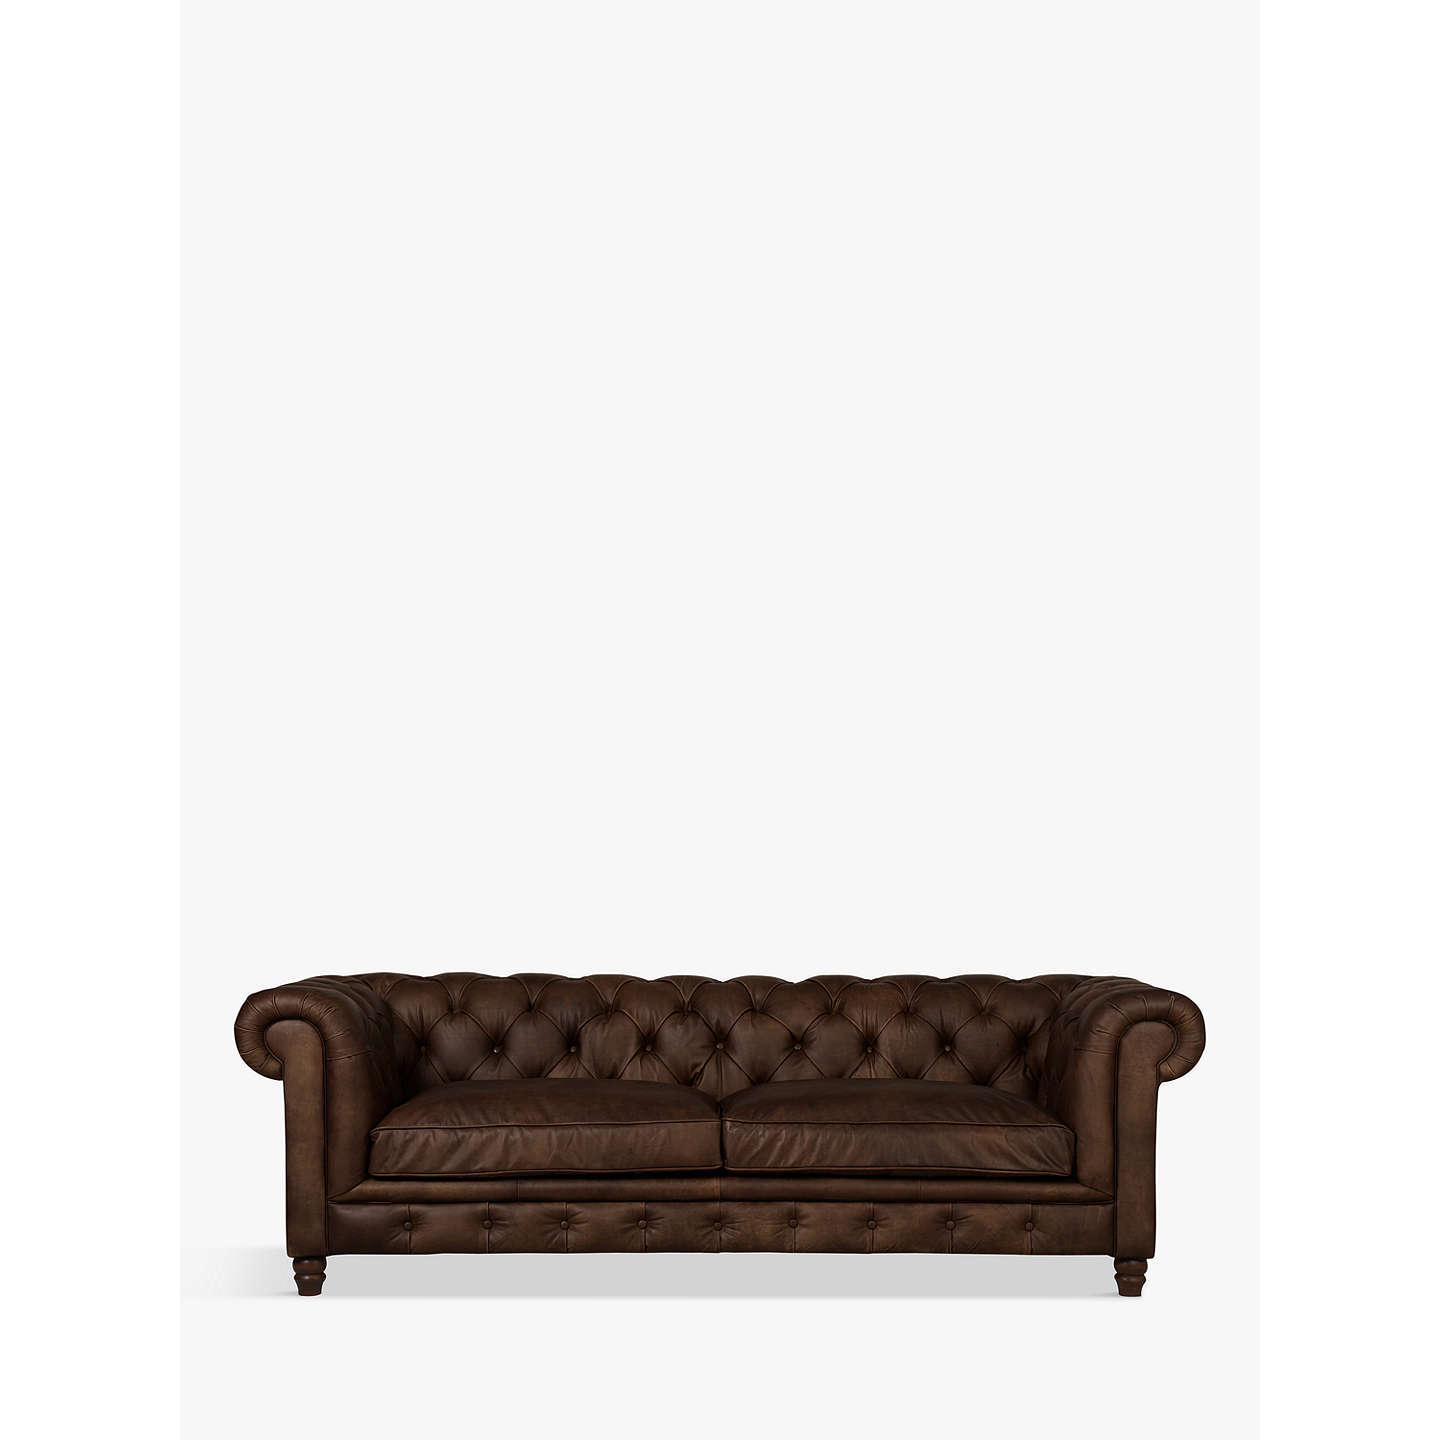 Superior BuyHalo Earle Large Chesterfield Leather Sofa, Riders Cocoa Online At  Johnlewis.com ...